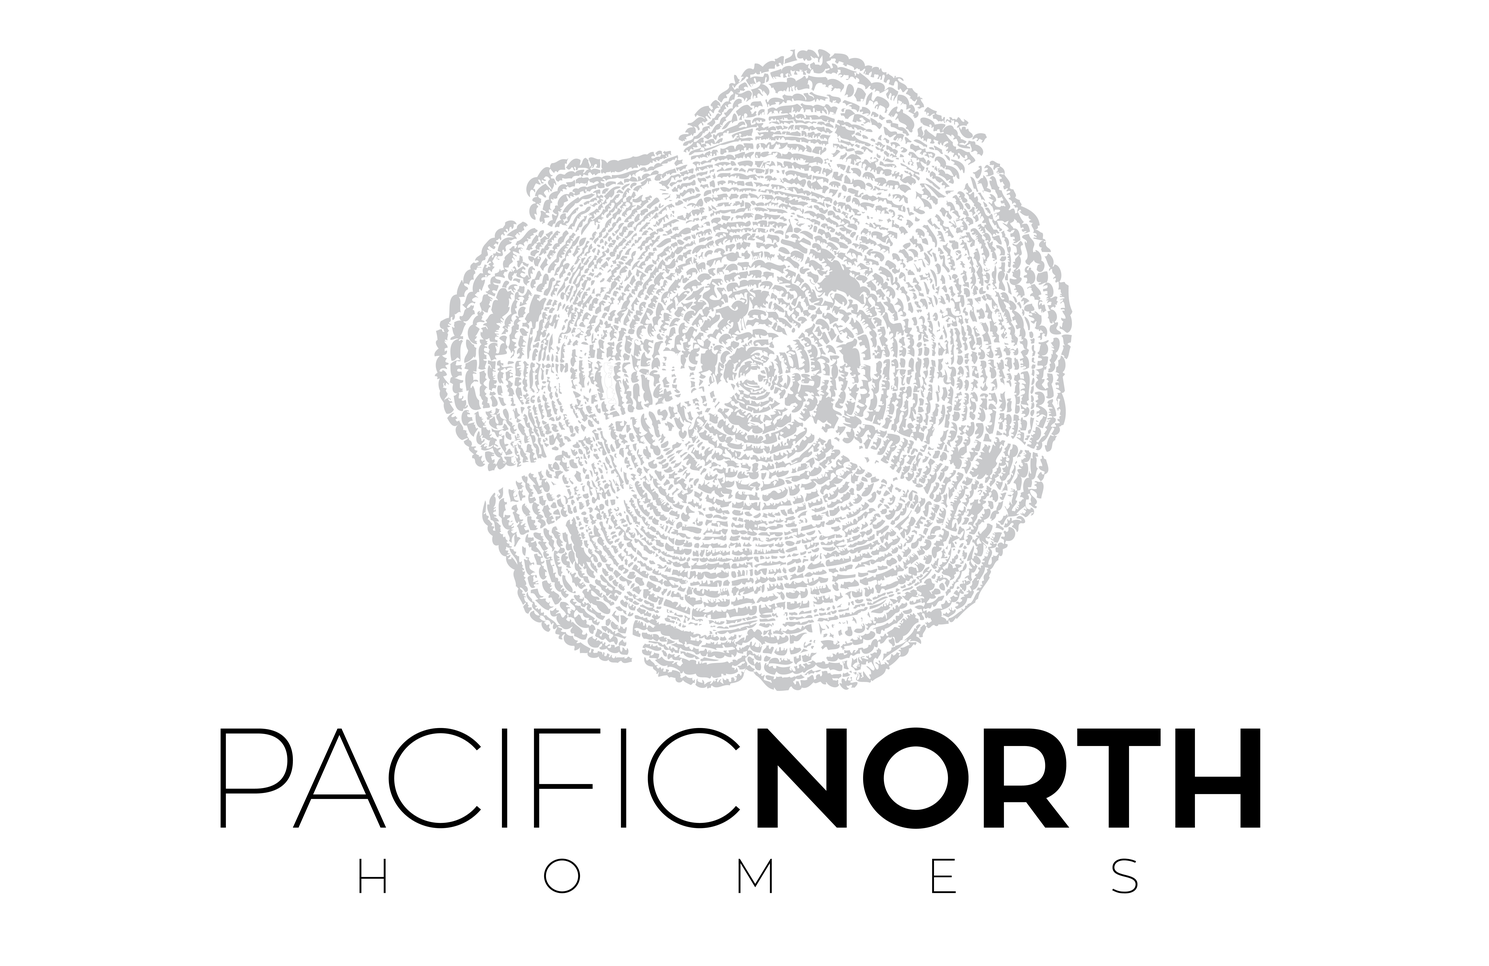 Pacific North Homes